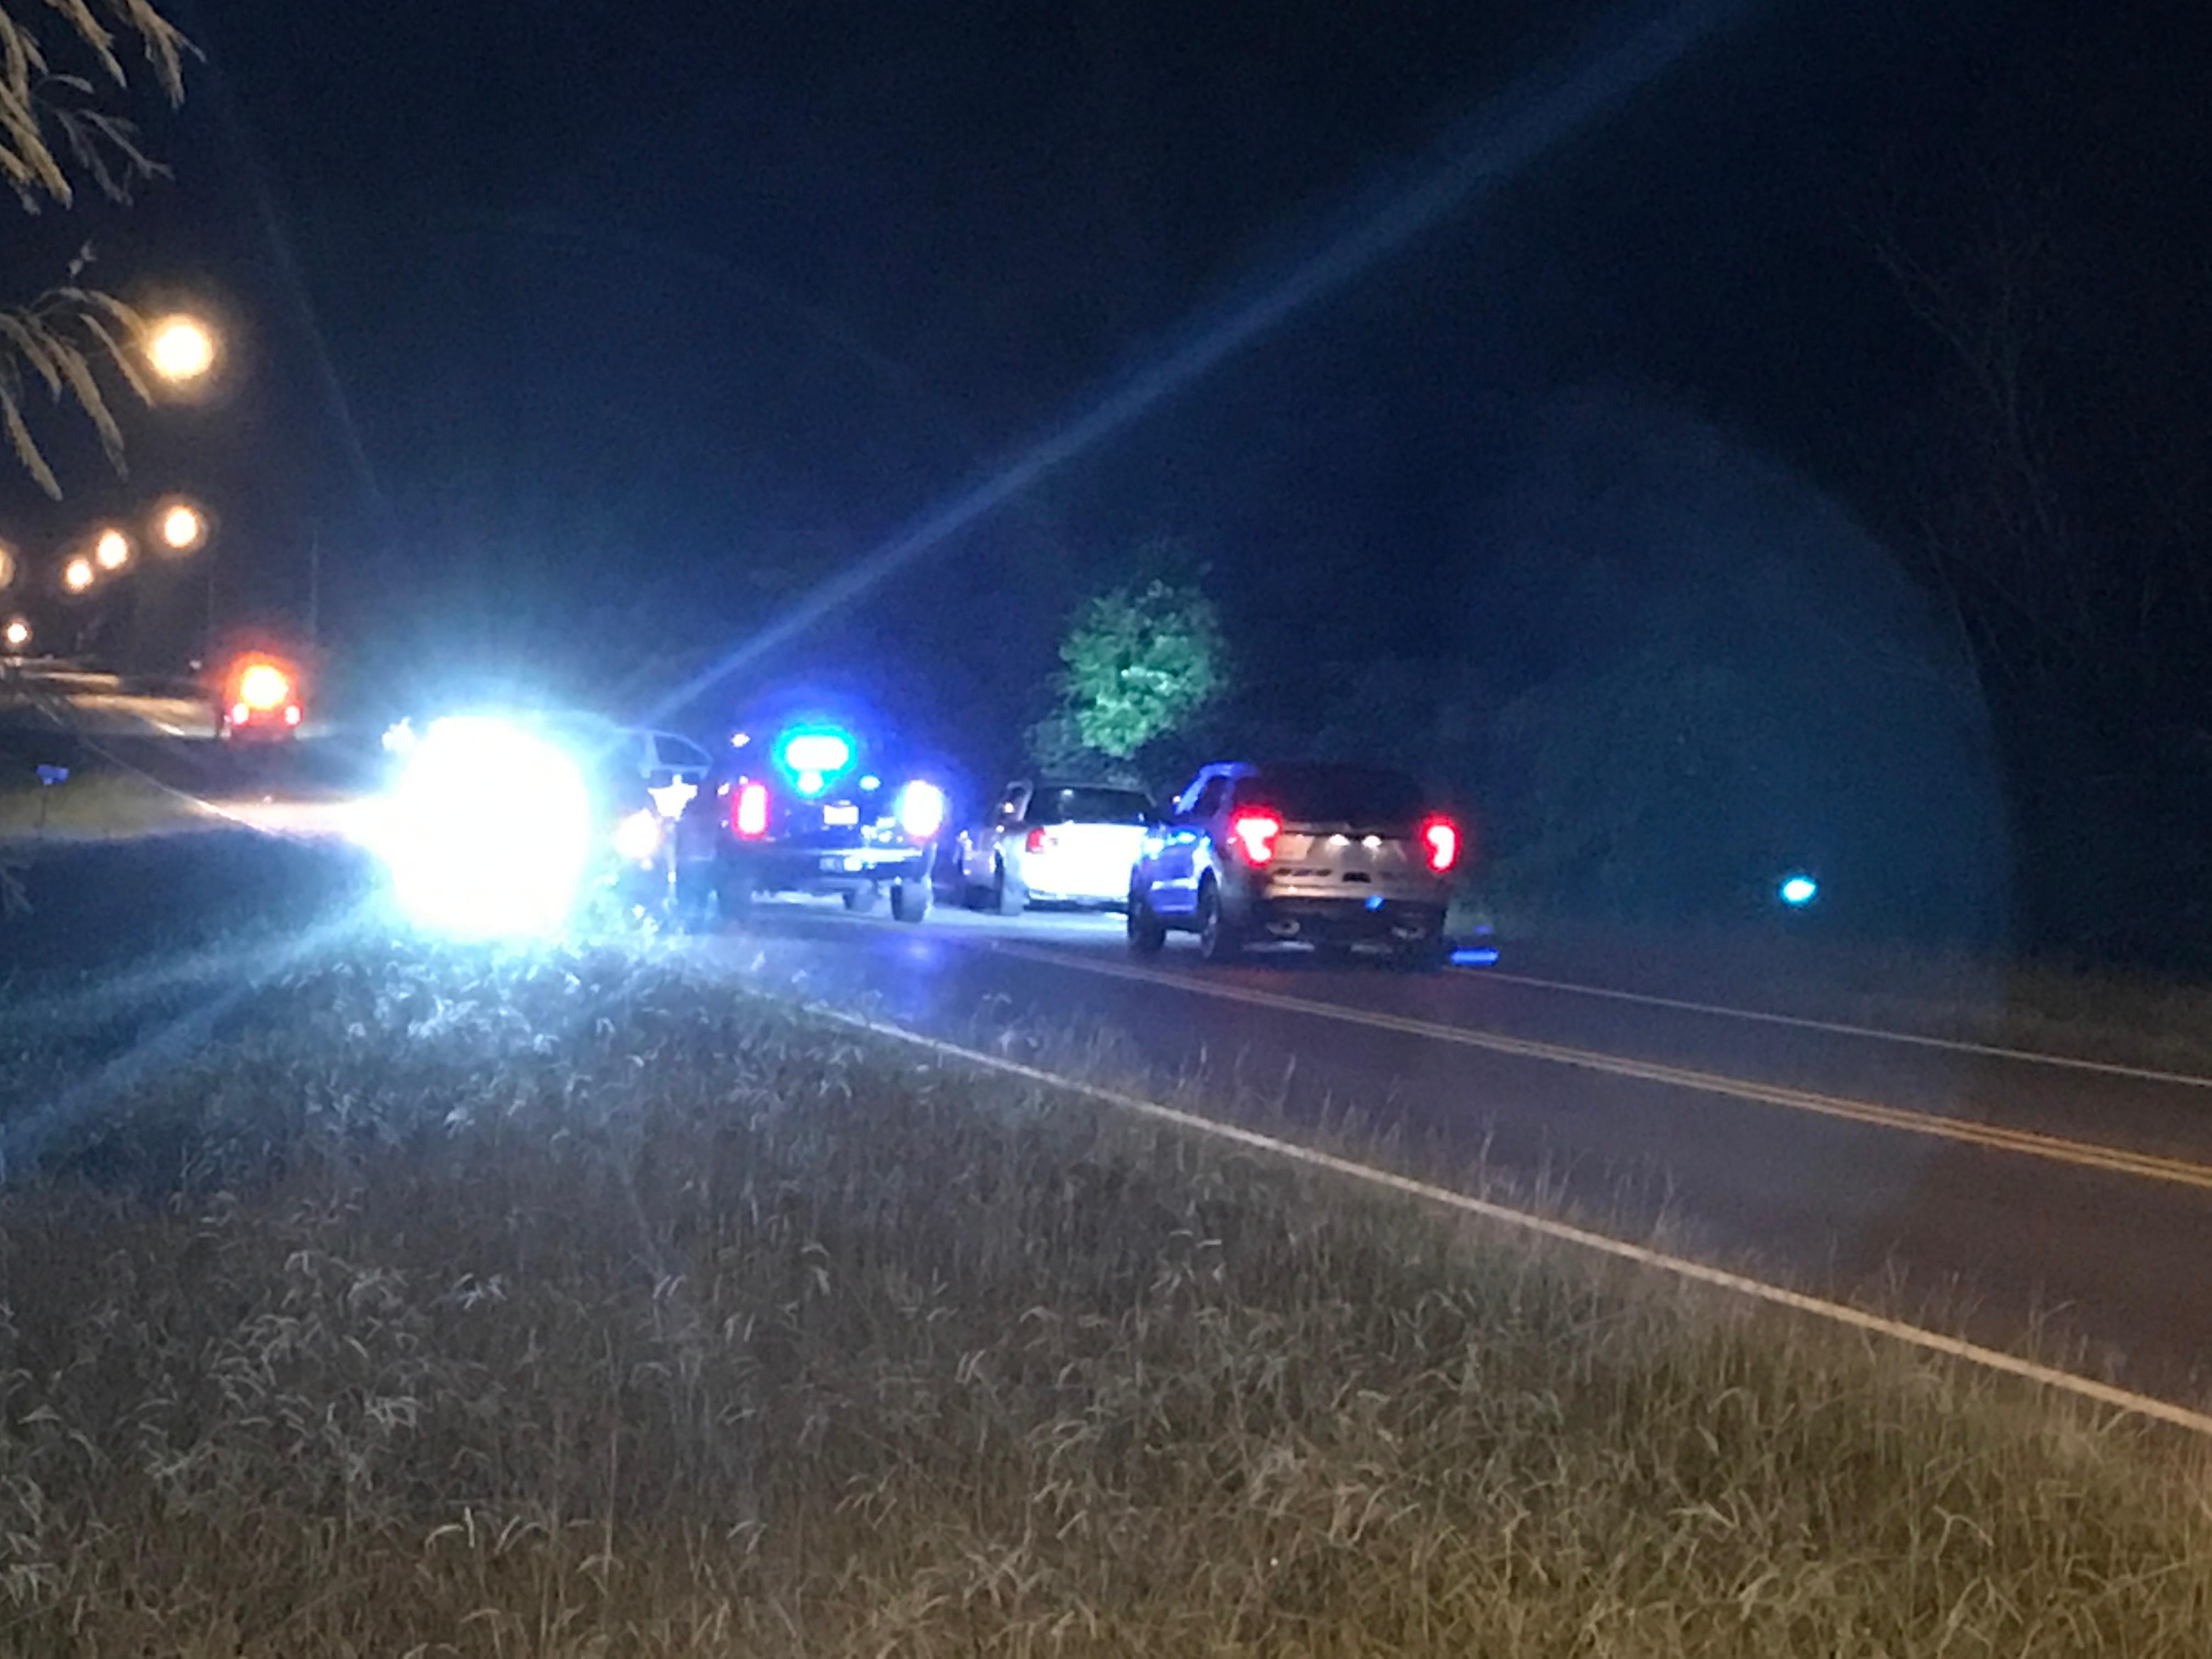 Walker County Sheriff's Office search for a dozen inmates who escaped from a jail in a plot which involved peanut butter. All inmates have since been recaptured. (abc3340.com)